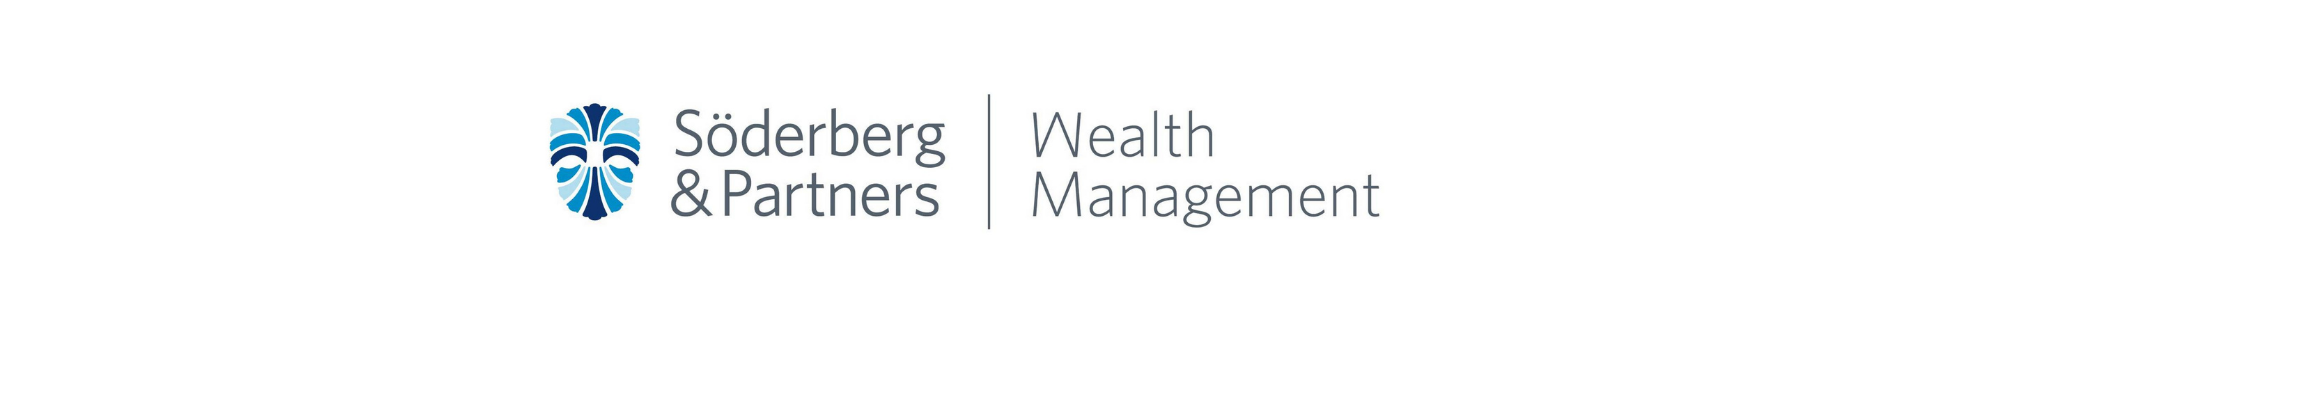 SMB Norge - Söderberg & Partners Wealth Management